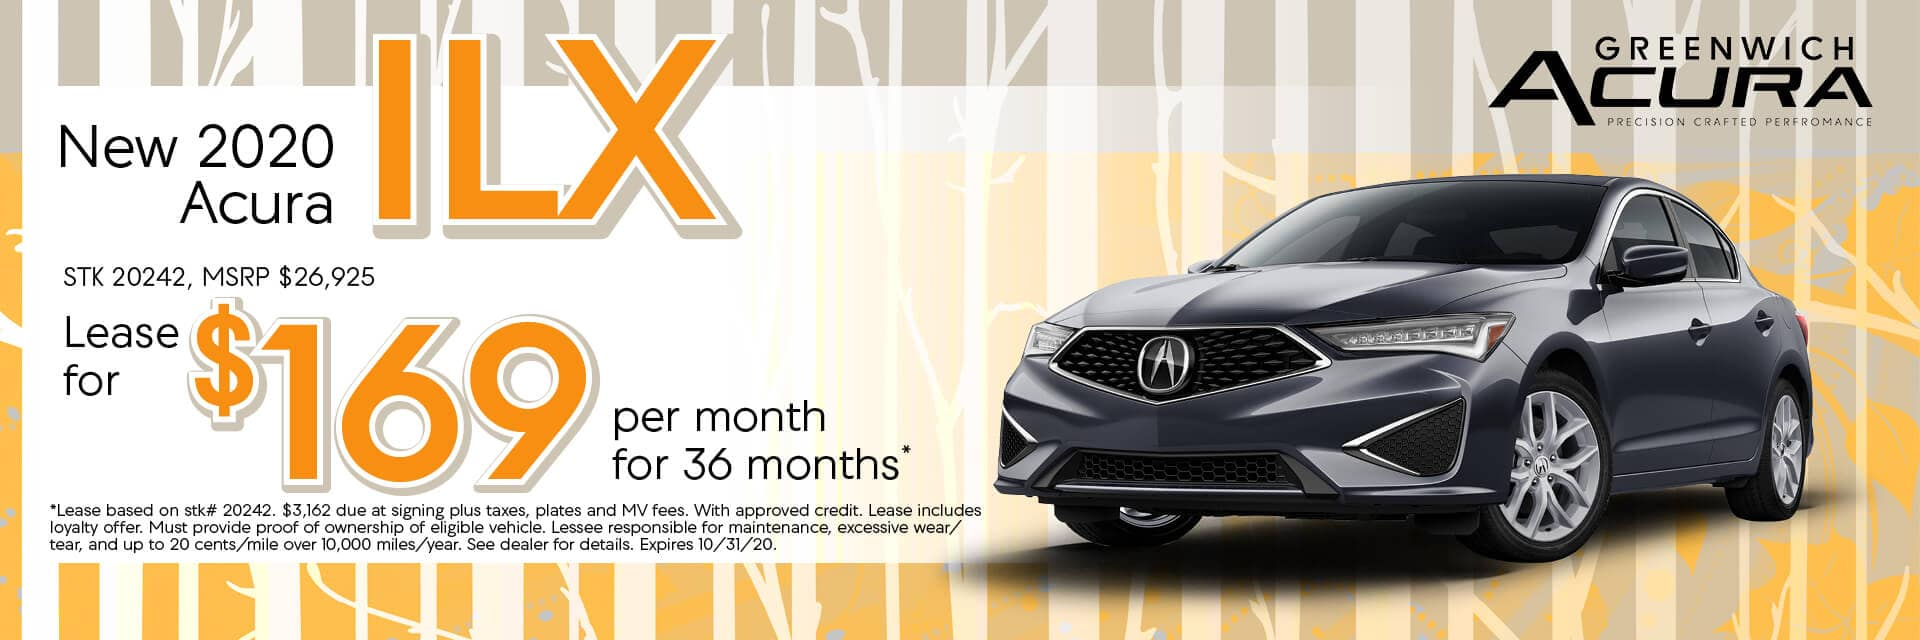 2020 Acura ILX | Lease for $169/mo. for 36 Mos. | Greenwich, CT